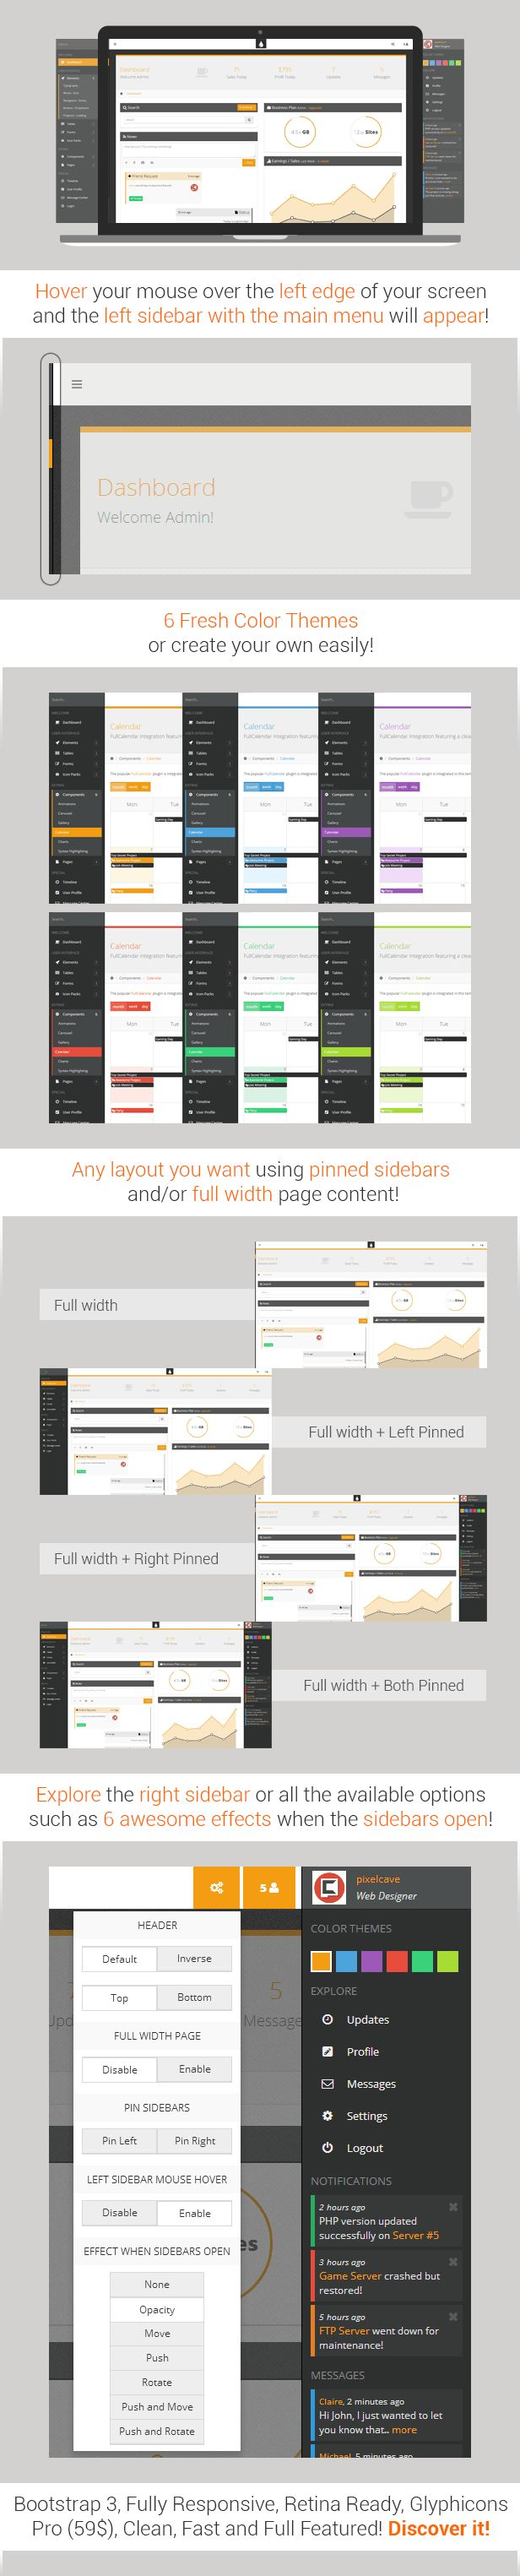 17 best Bootstrap Theme images on Pinterest | Template, Role models ...